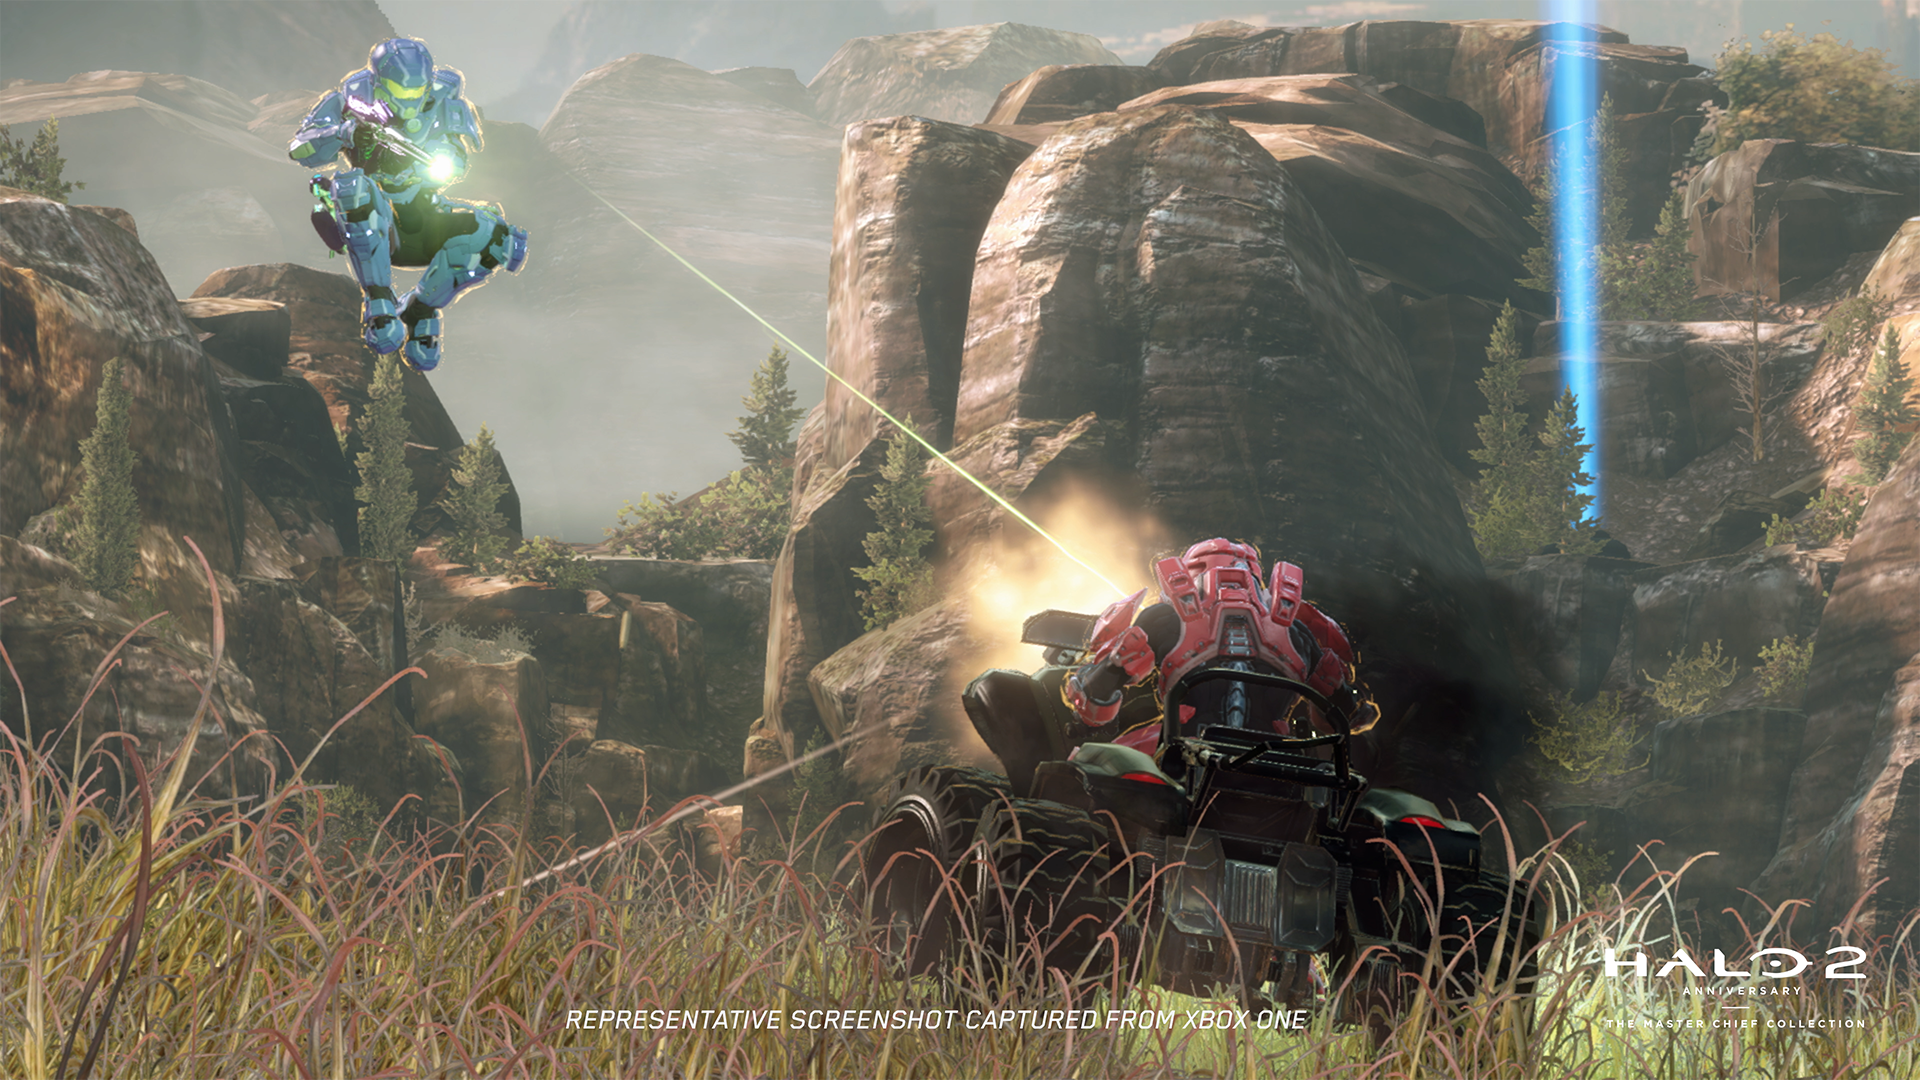 Halo-Master-Chief-Collection-2020_Halo2Anniversary_Multiplayer_07_Watermarked_1920x1080